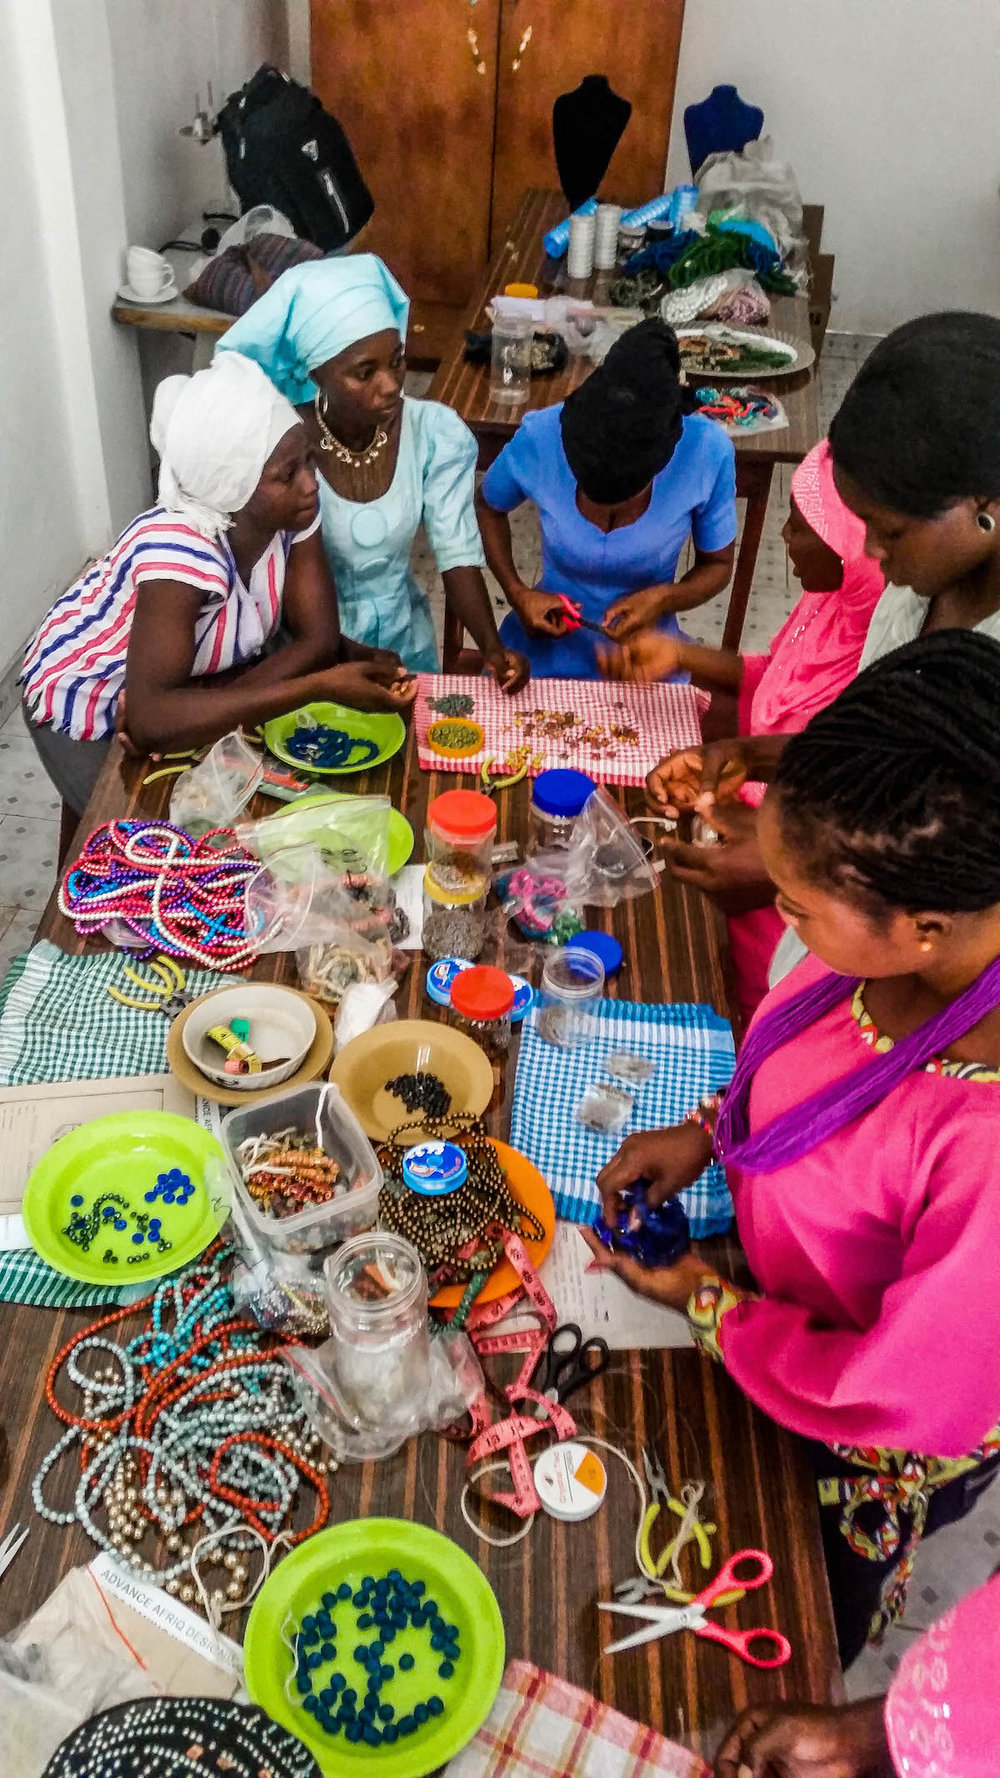 The Design Training School located in Ghana, where girls are trained to make a variety of design items and the business skills to launch an enterprise.